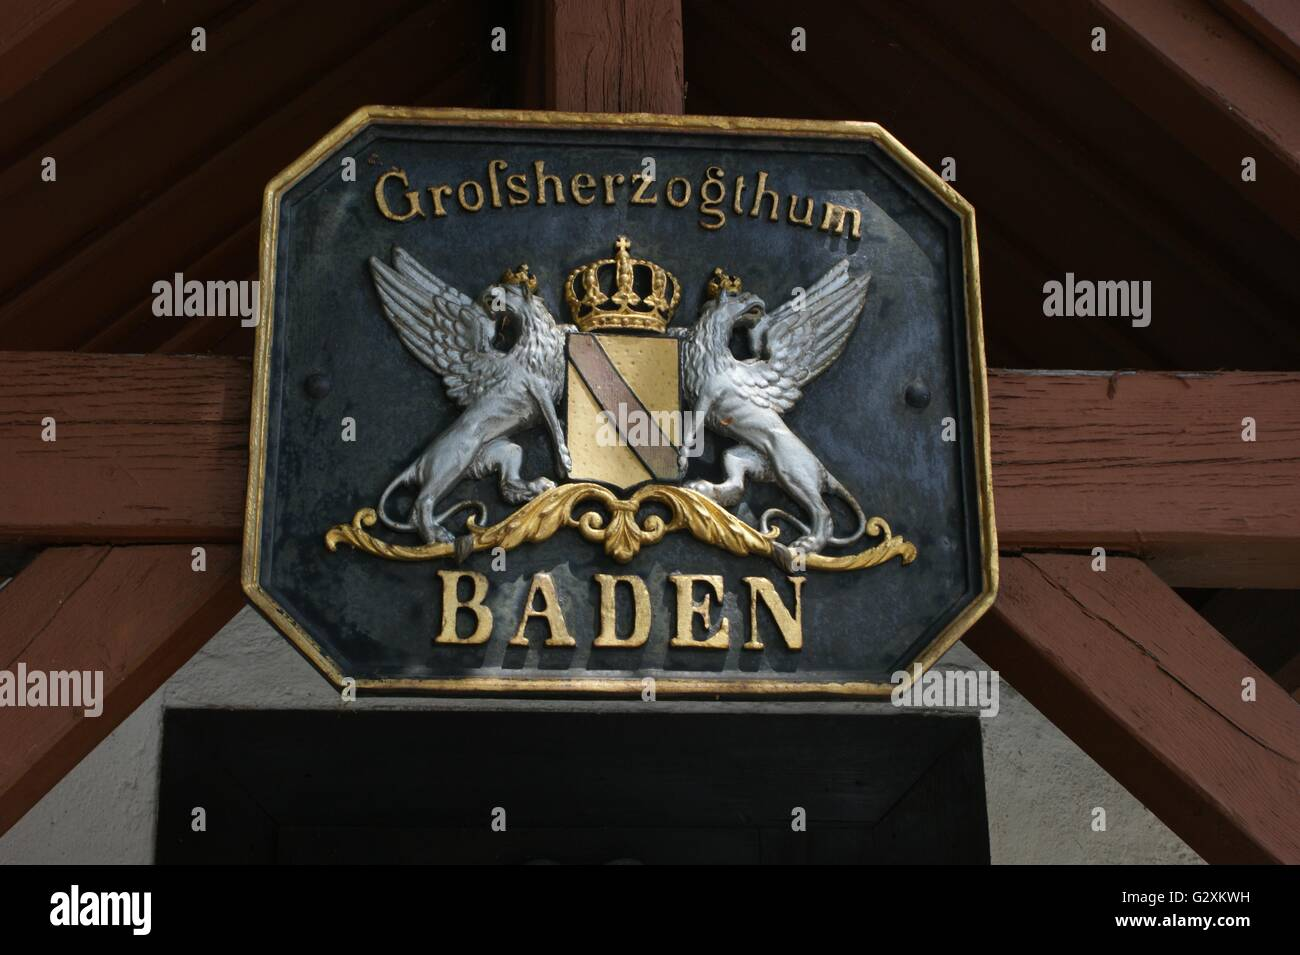 SONY DSC coat of arms, Baden, Germany on the Rhine near Kaisersthul, Switzerland - Stock Image